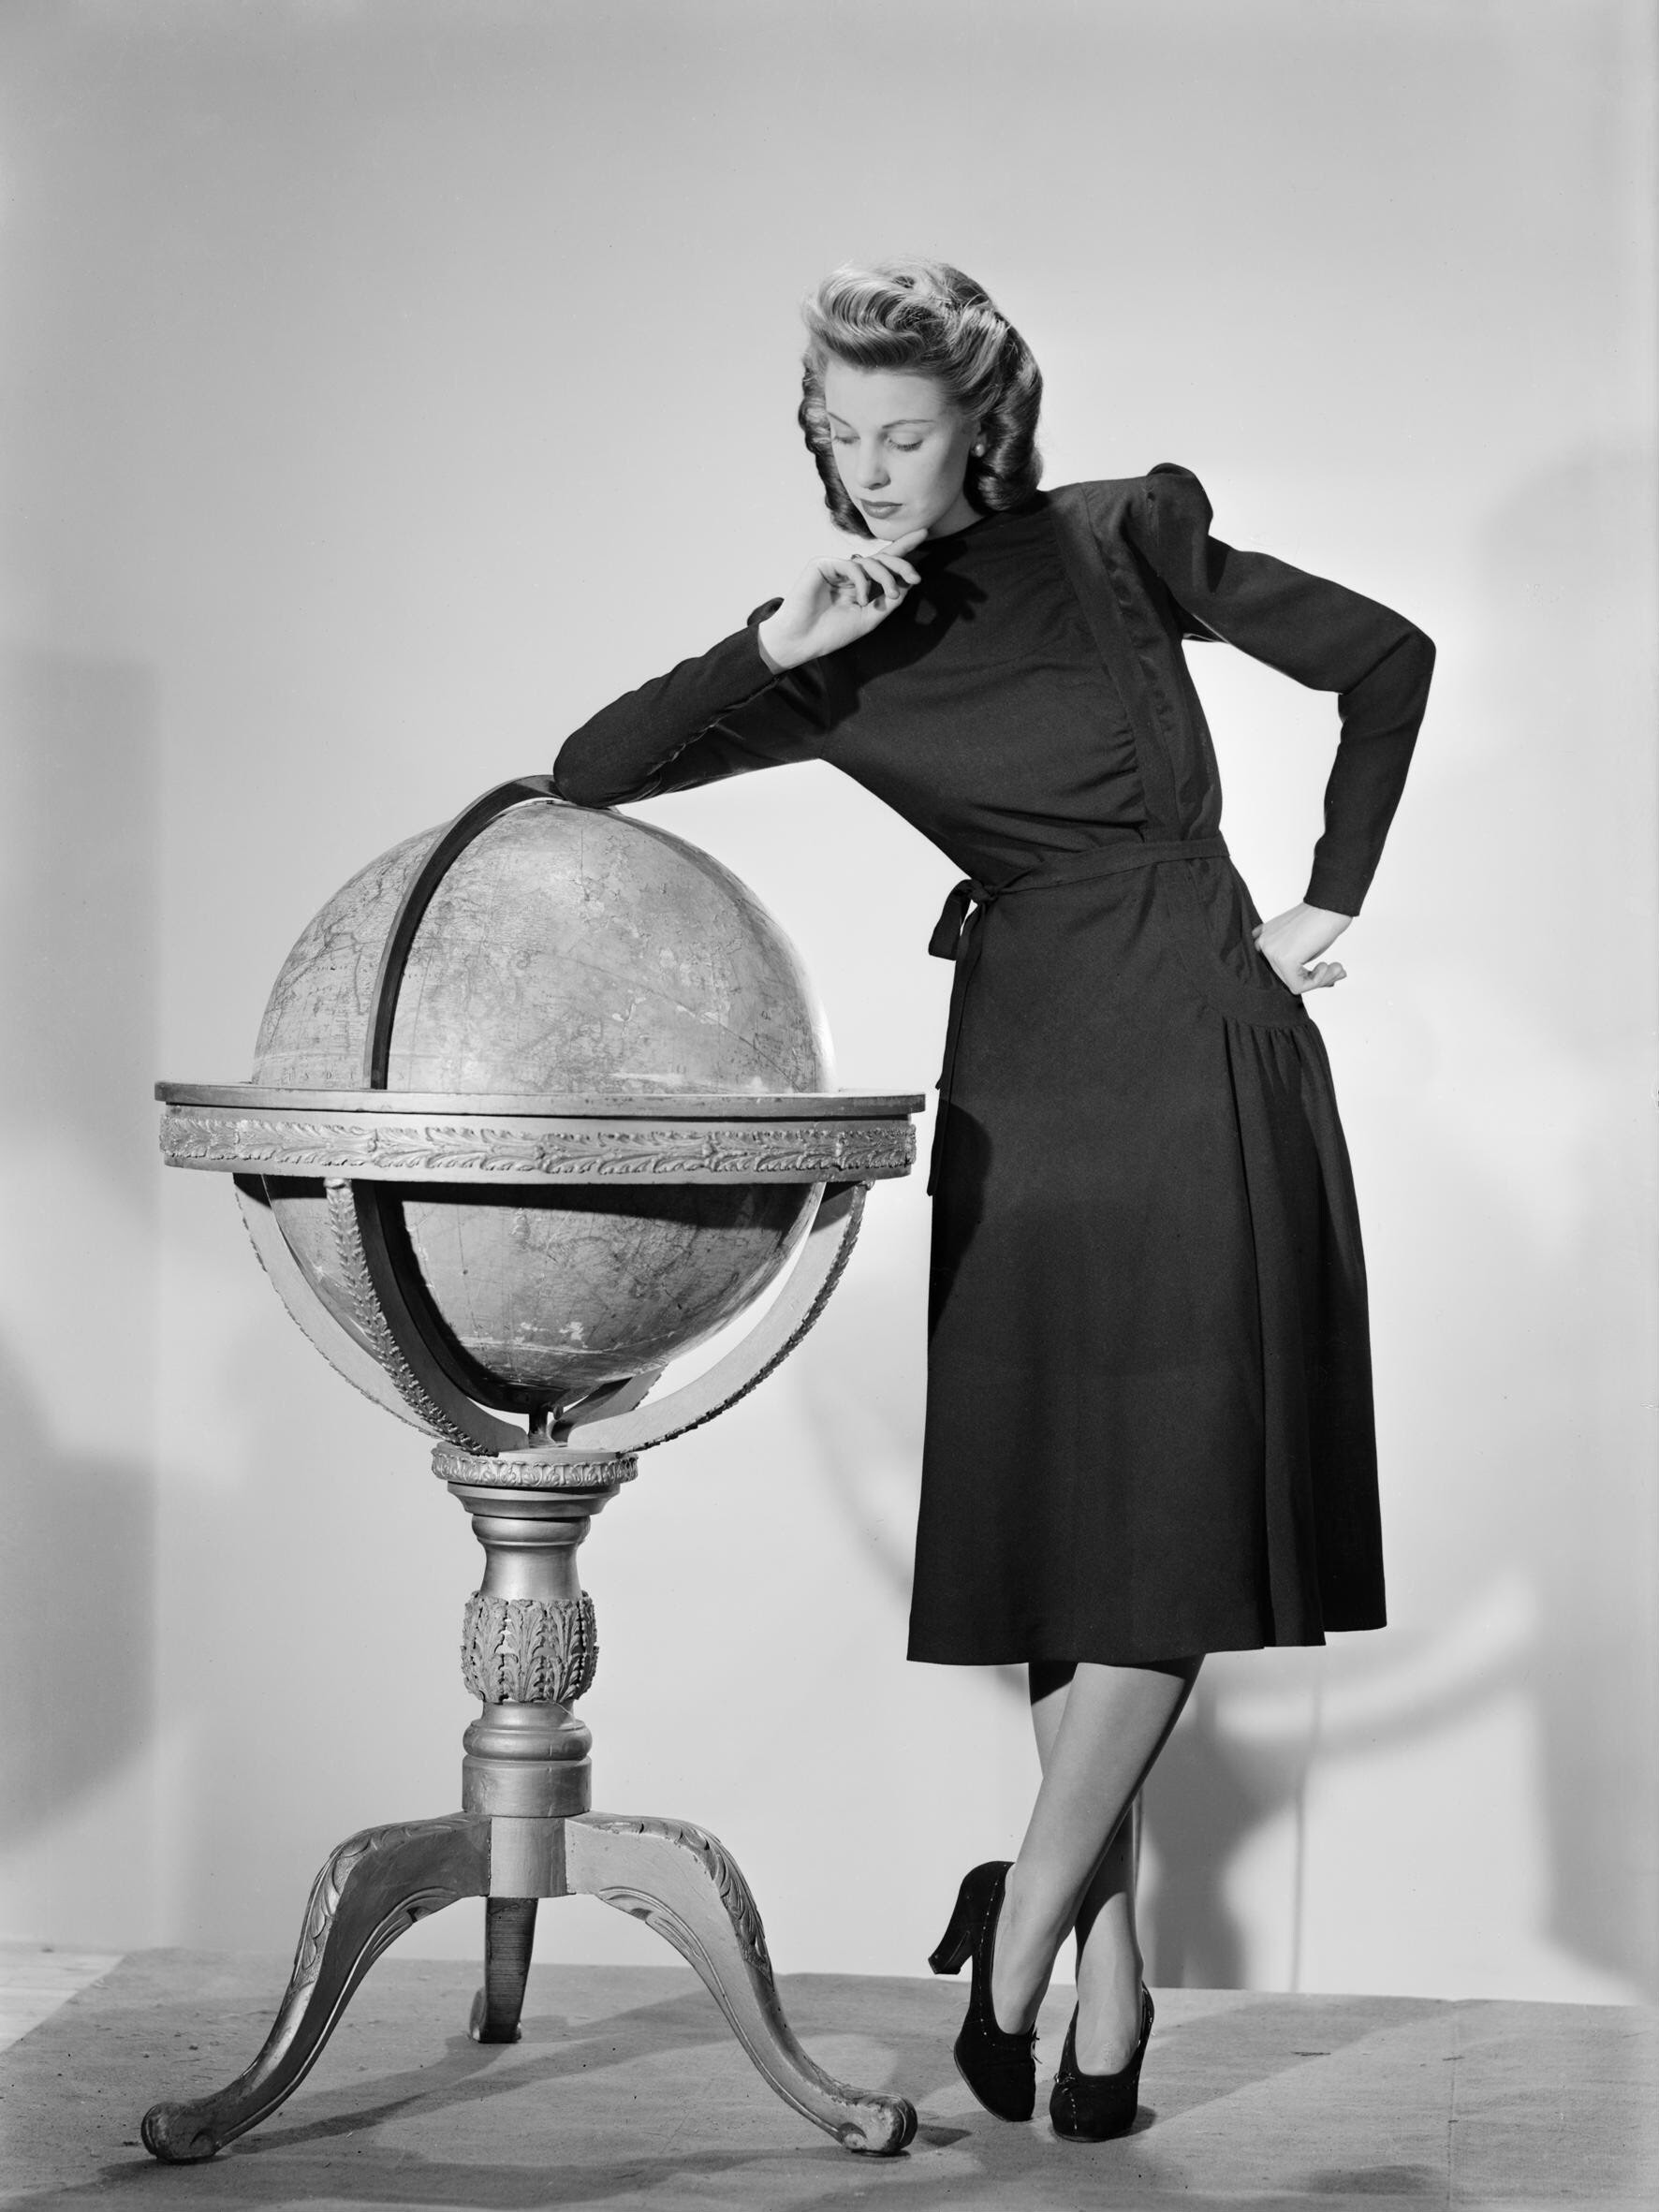 1943 dress (source: Wikimedia)